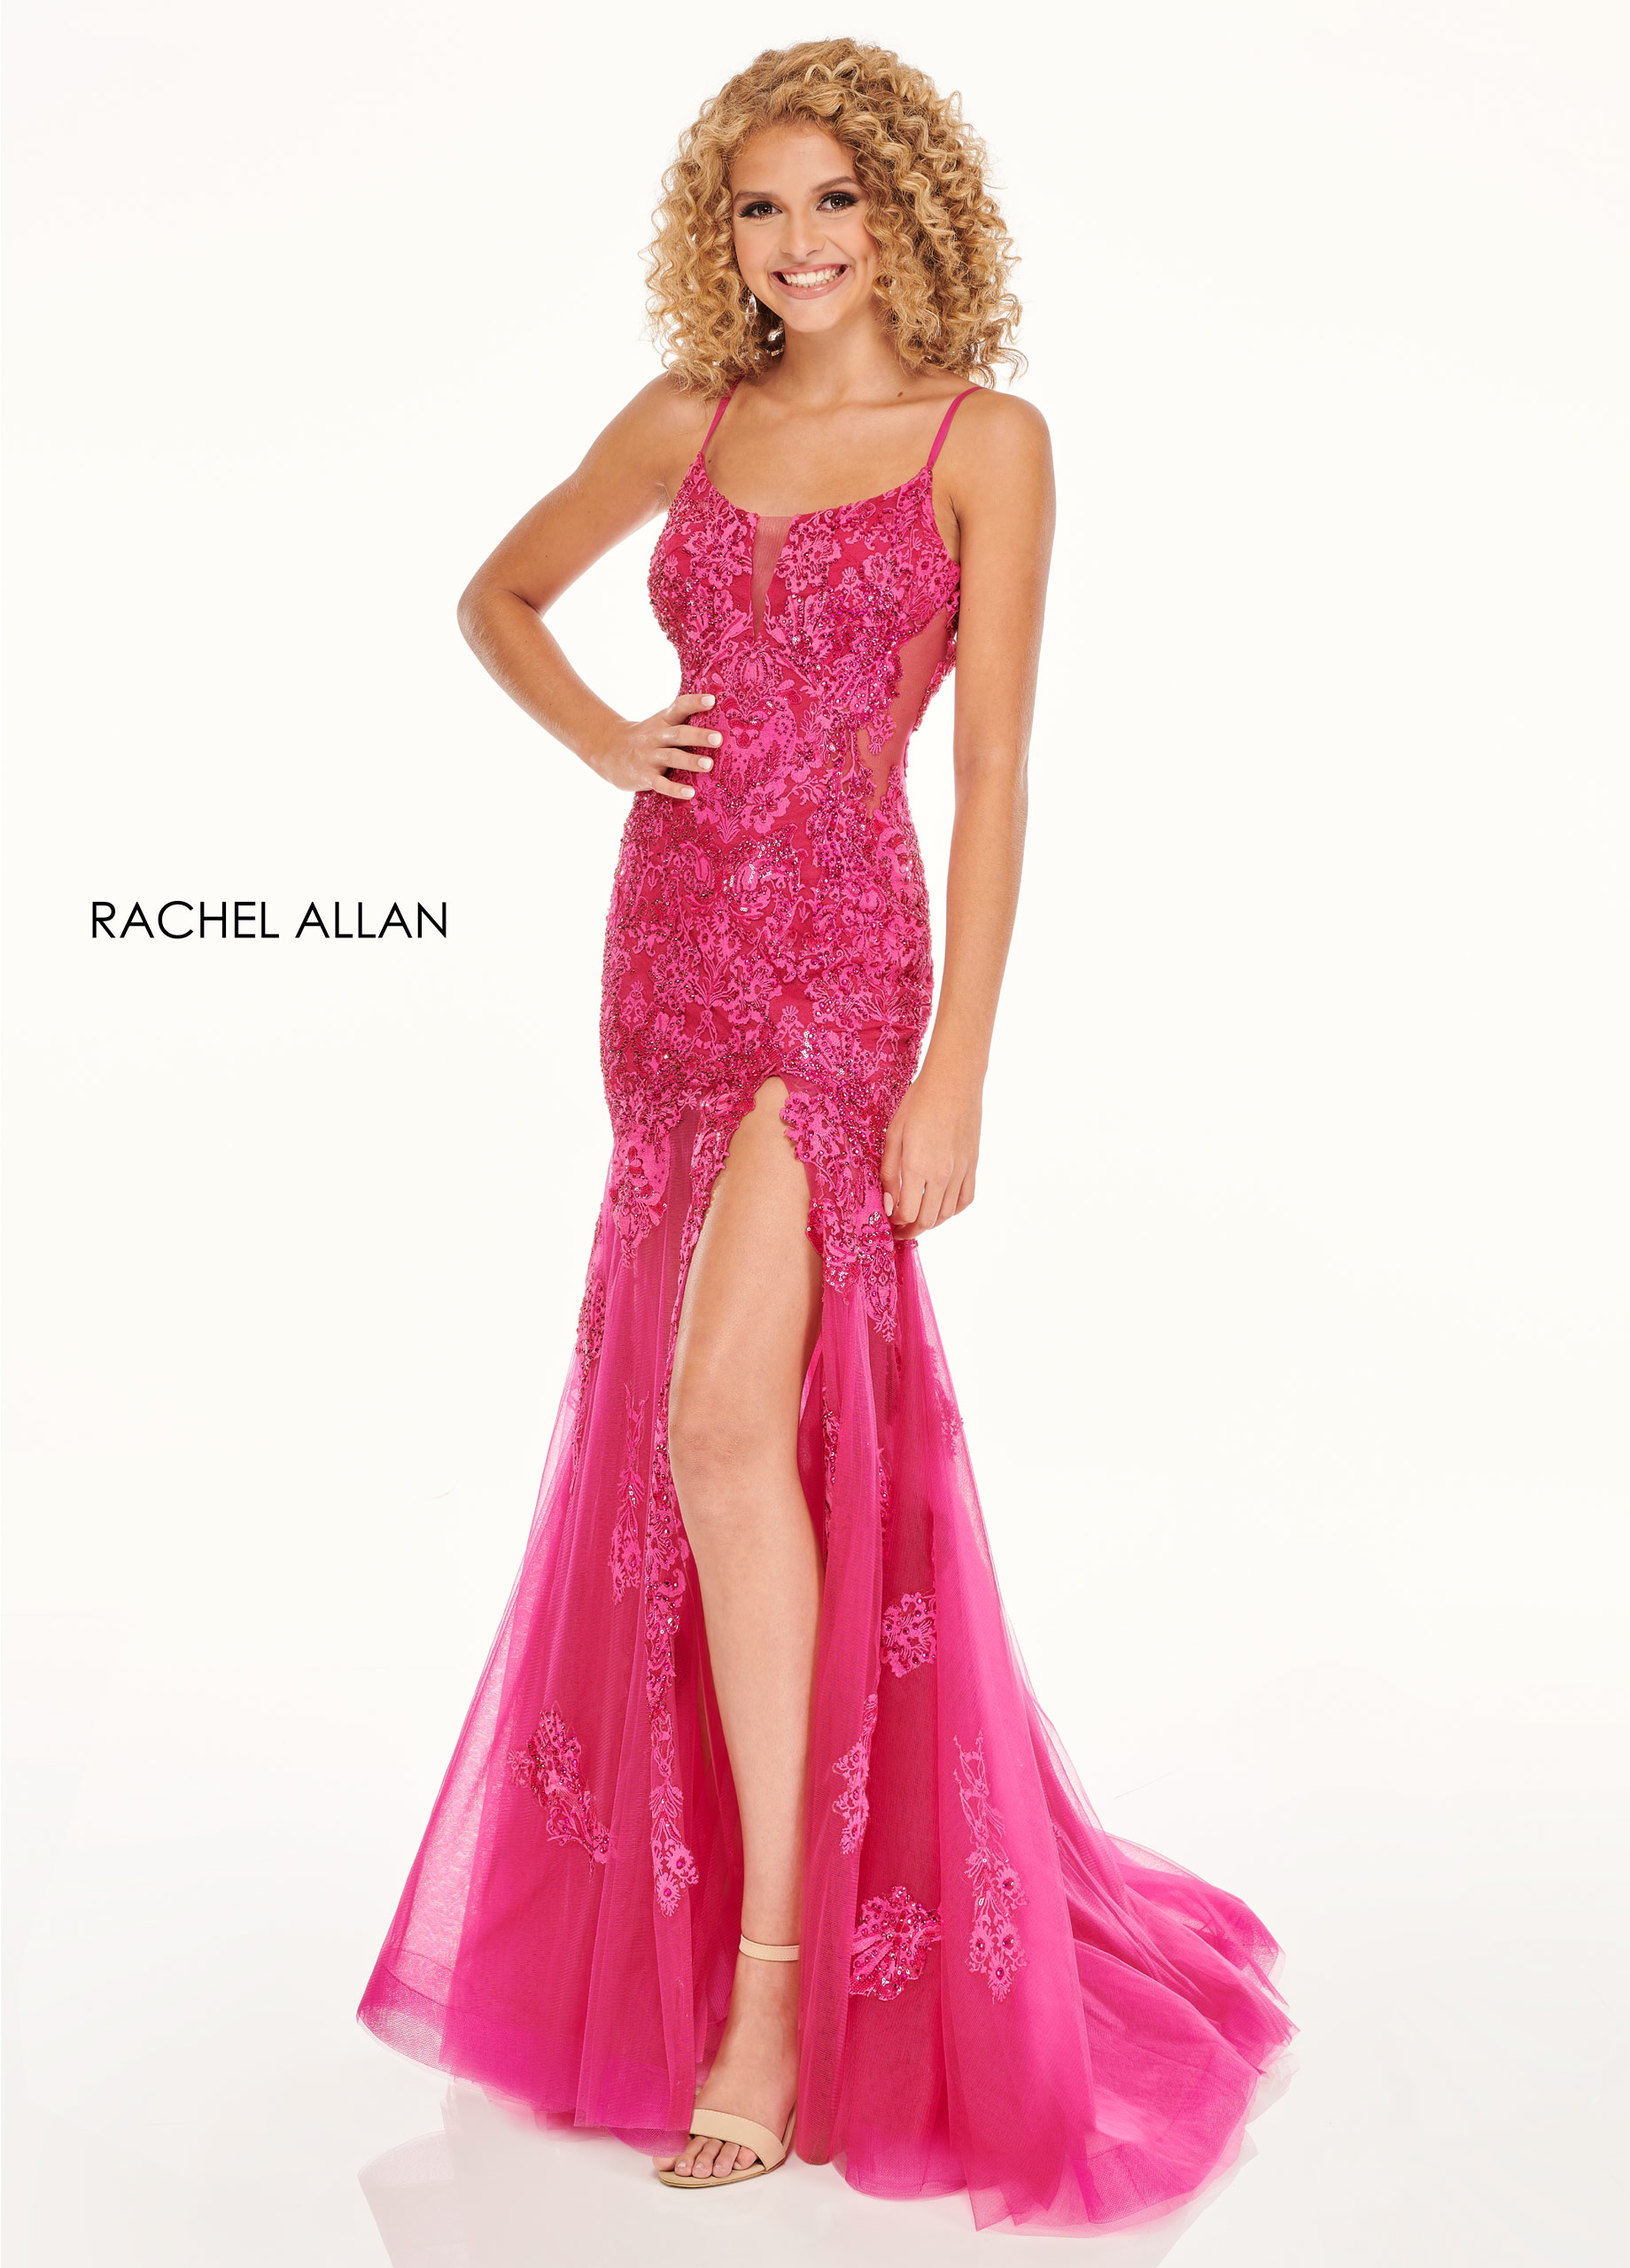 Scoop Neck Fitted Long Prom Dresses in Fuchsia Color